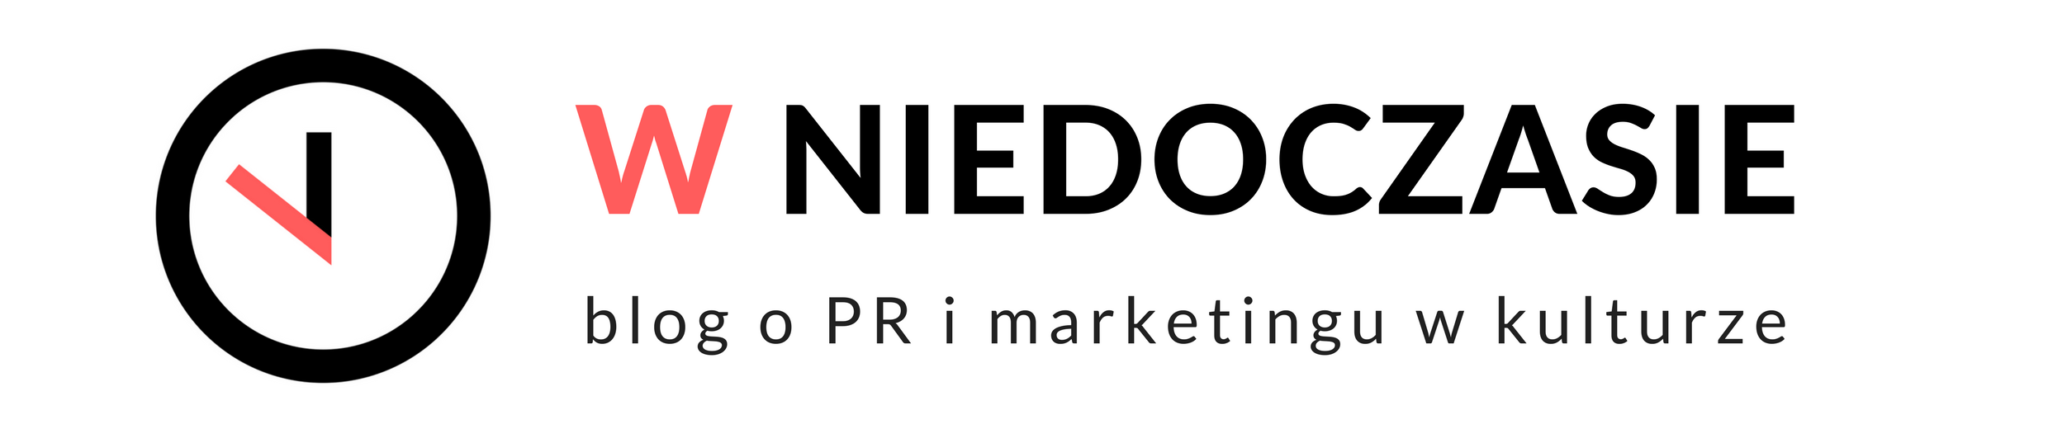 blog o PR i marketingu w kulturze